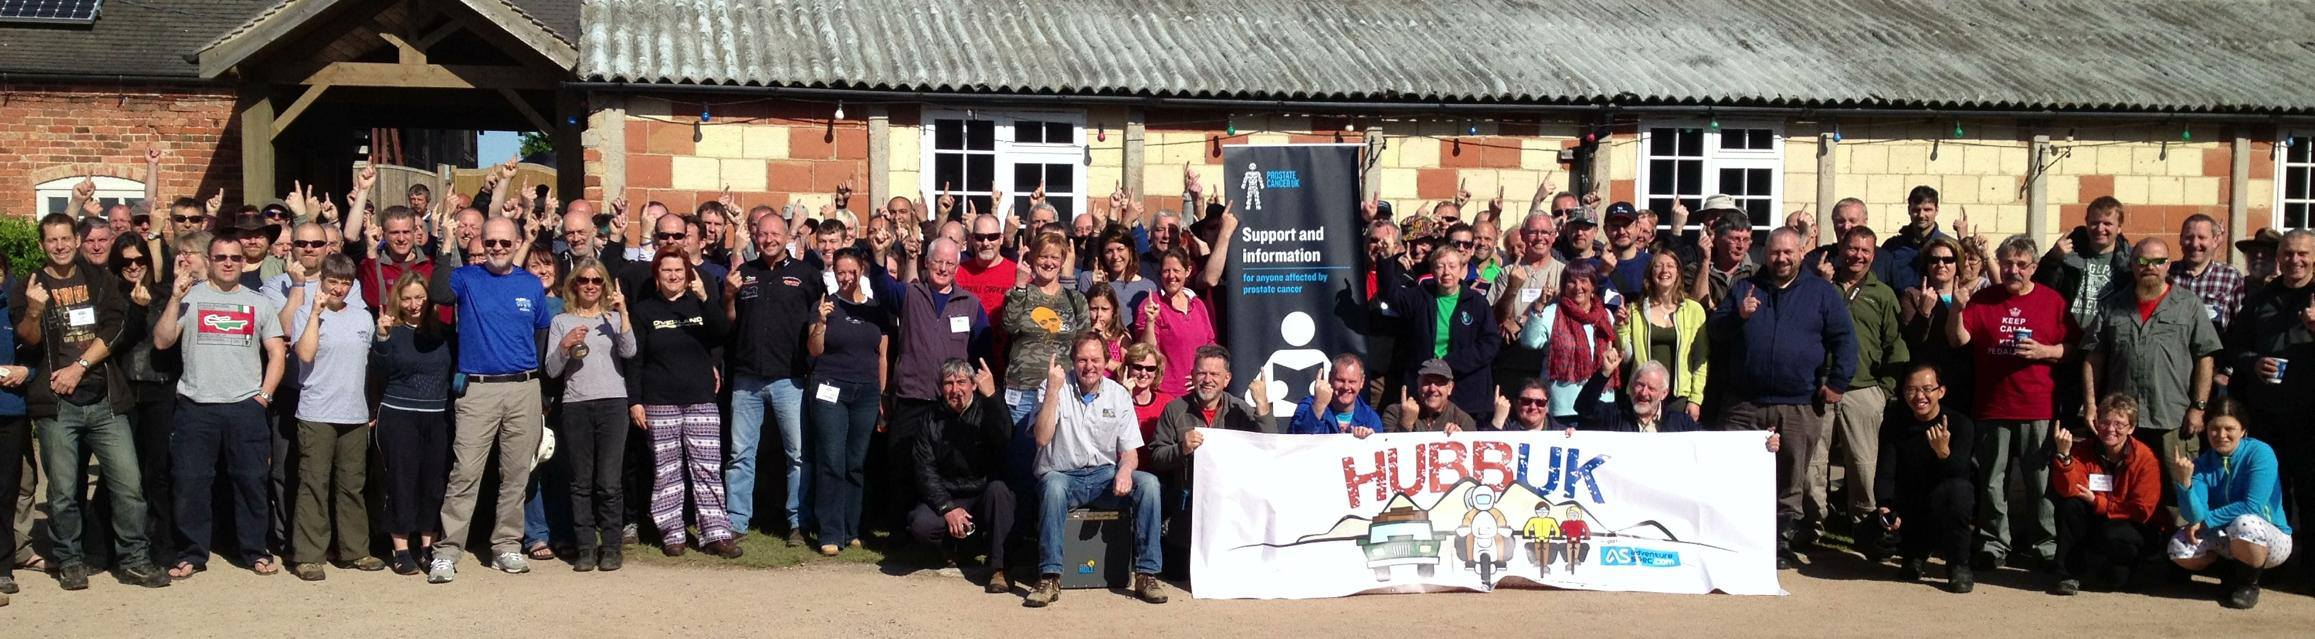 Hubb UK group photo © Horizons Unlimited